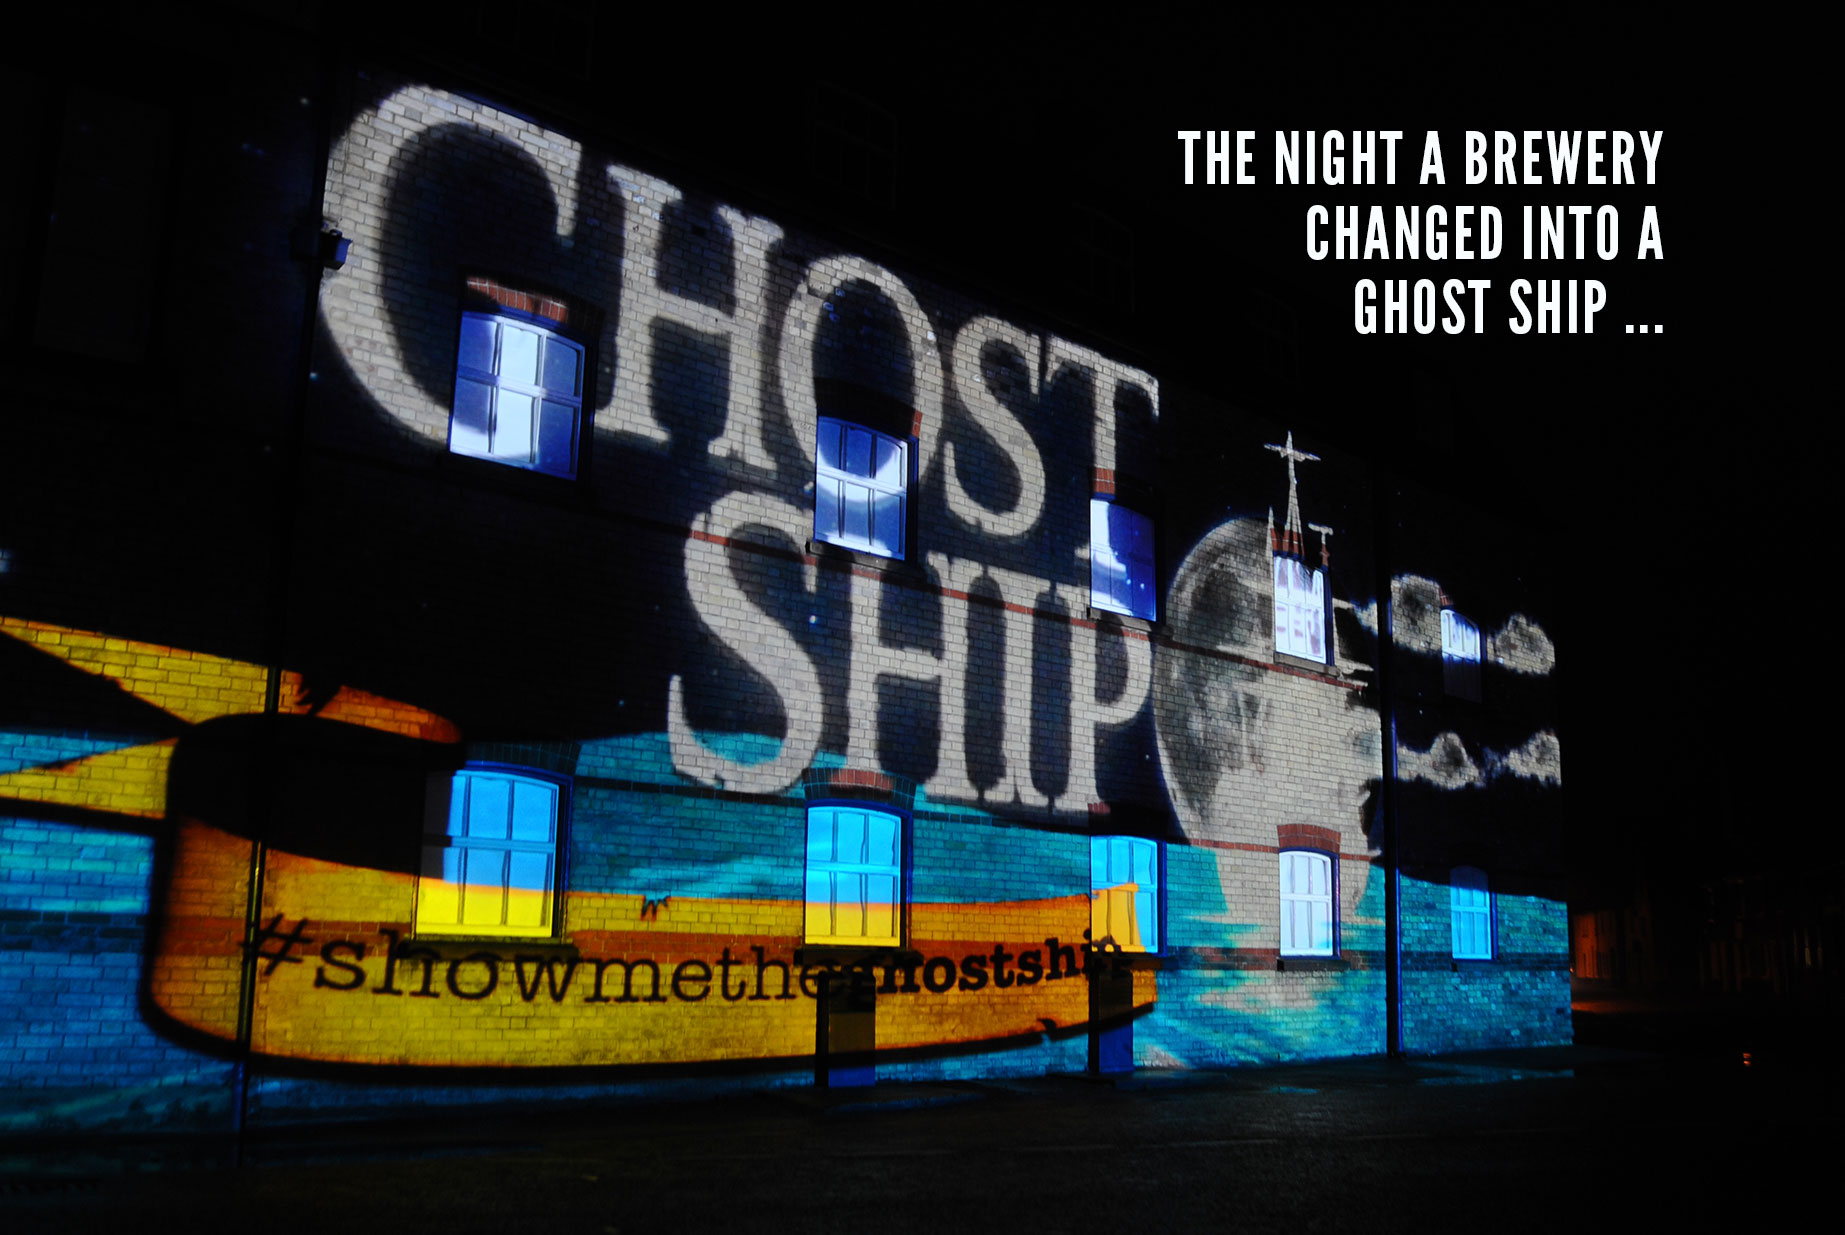 Adnams Ghost Ship Launch projection